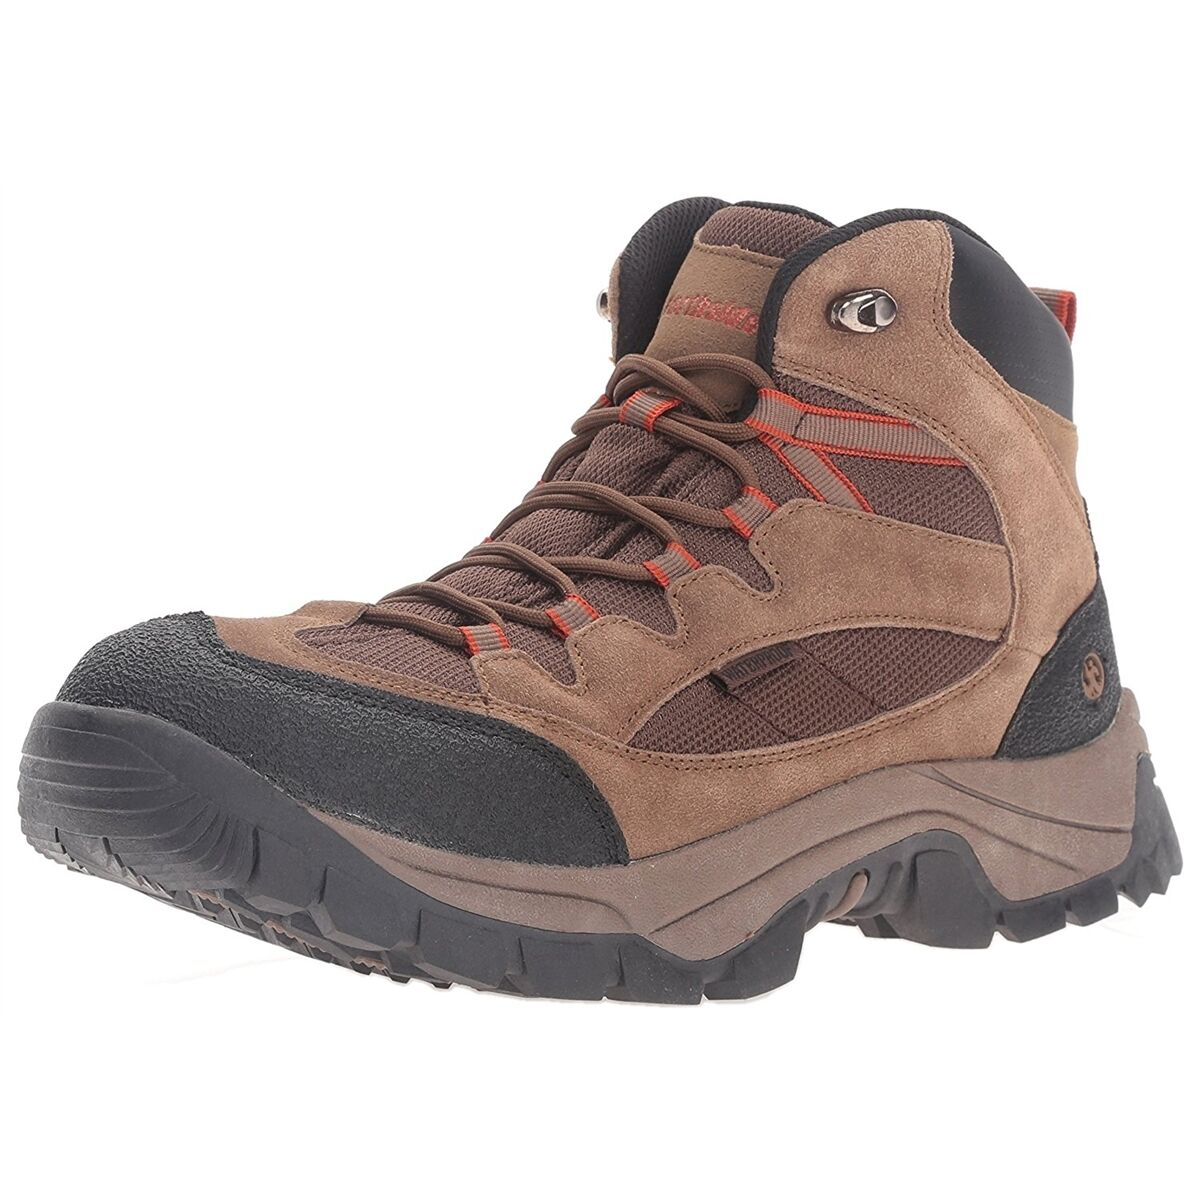 Mens Hiking Boots Northside Montero Mid Waterproof Hiking Boots Brown